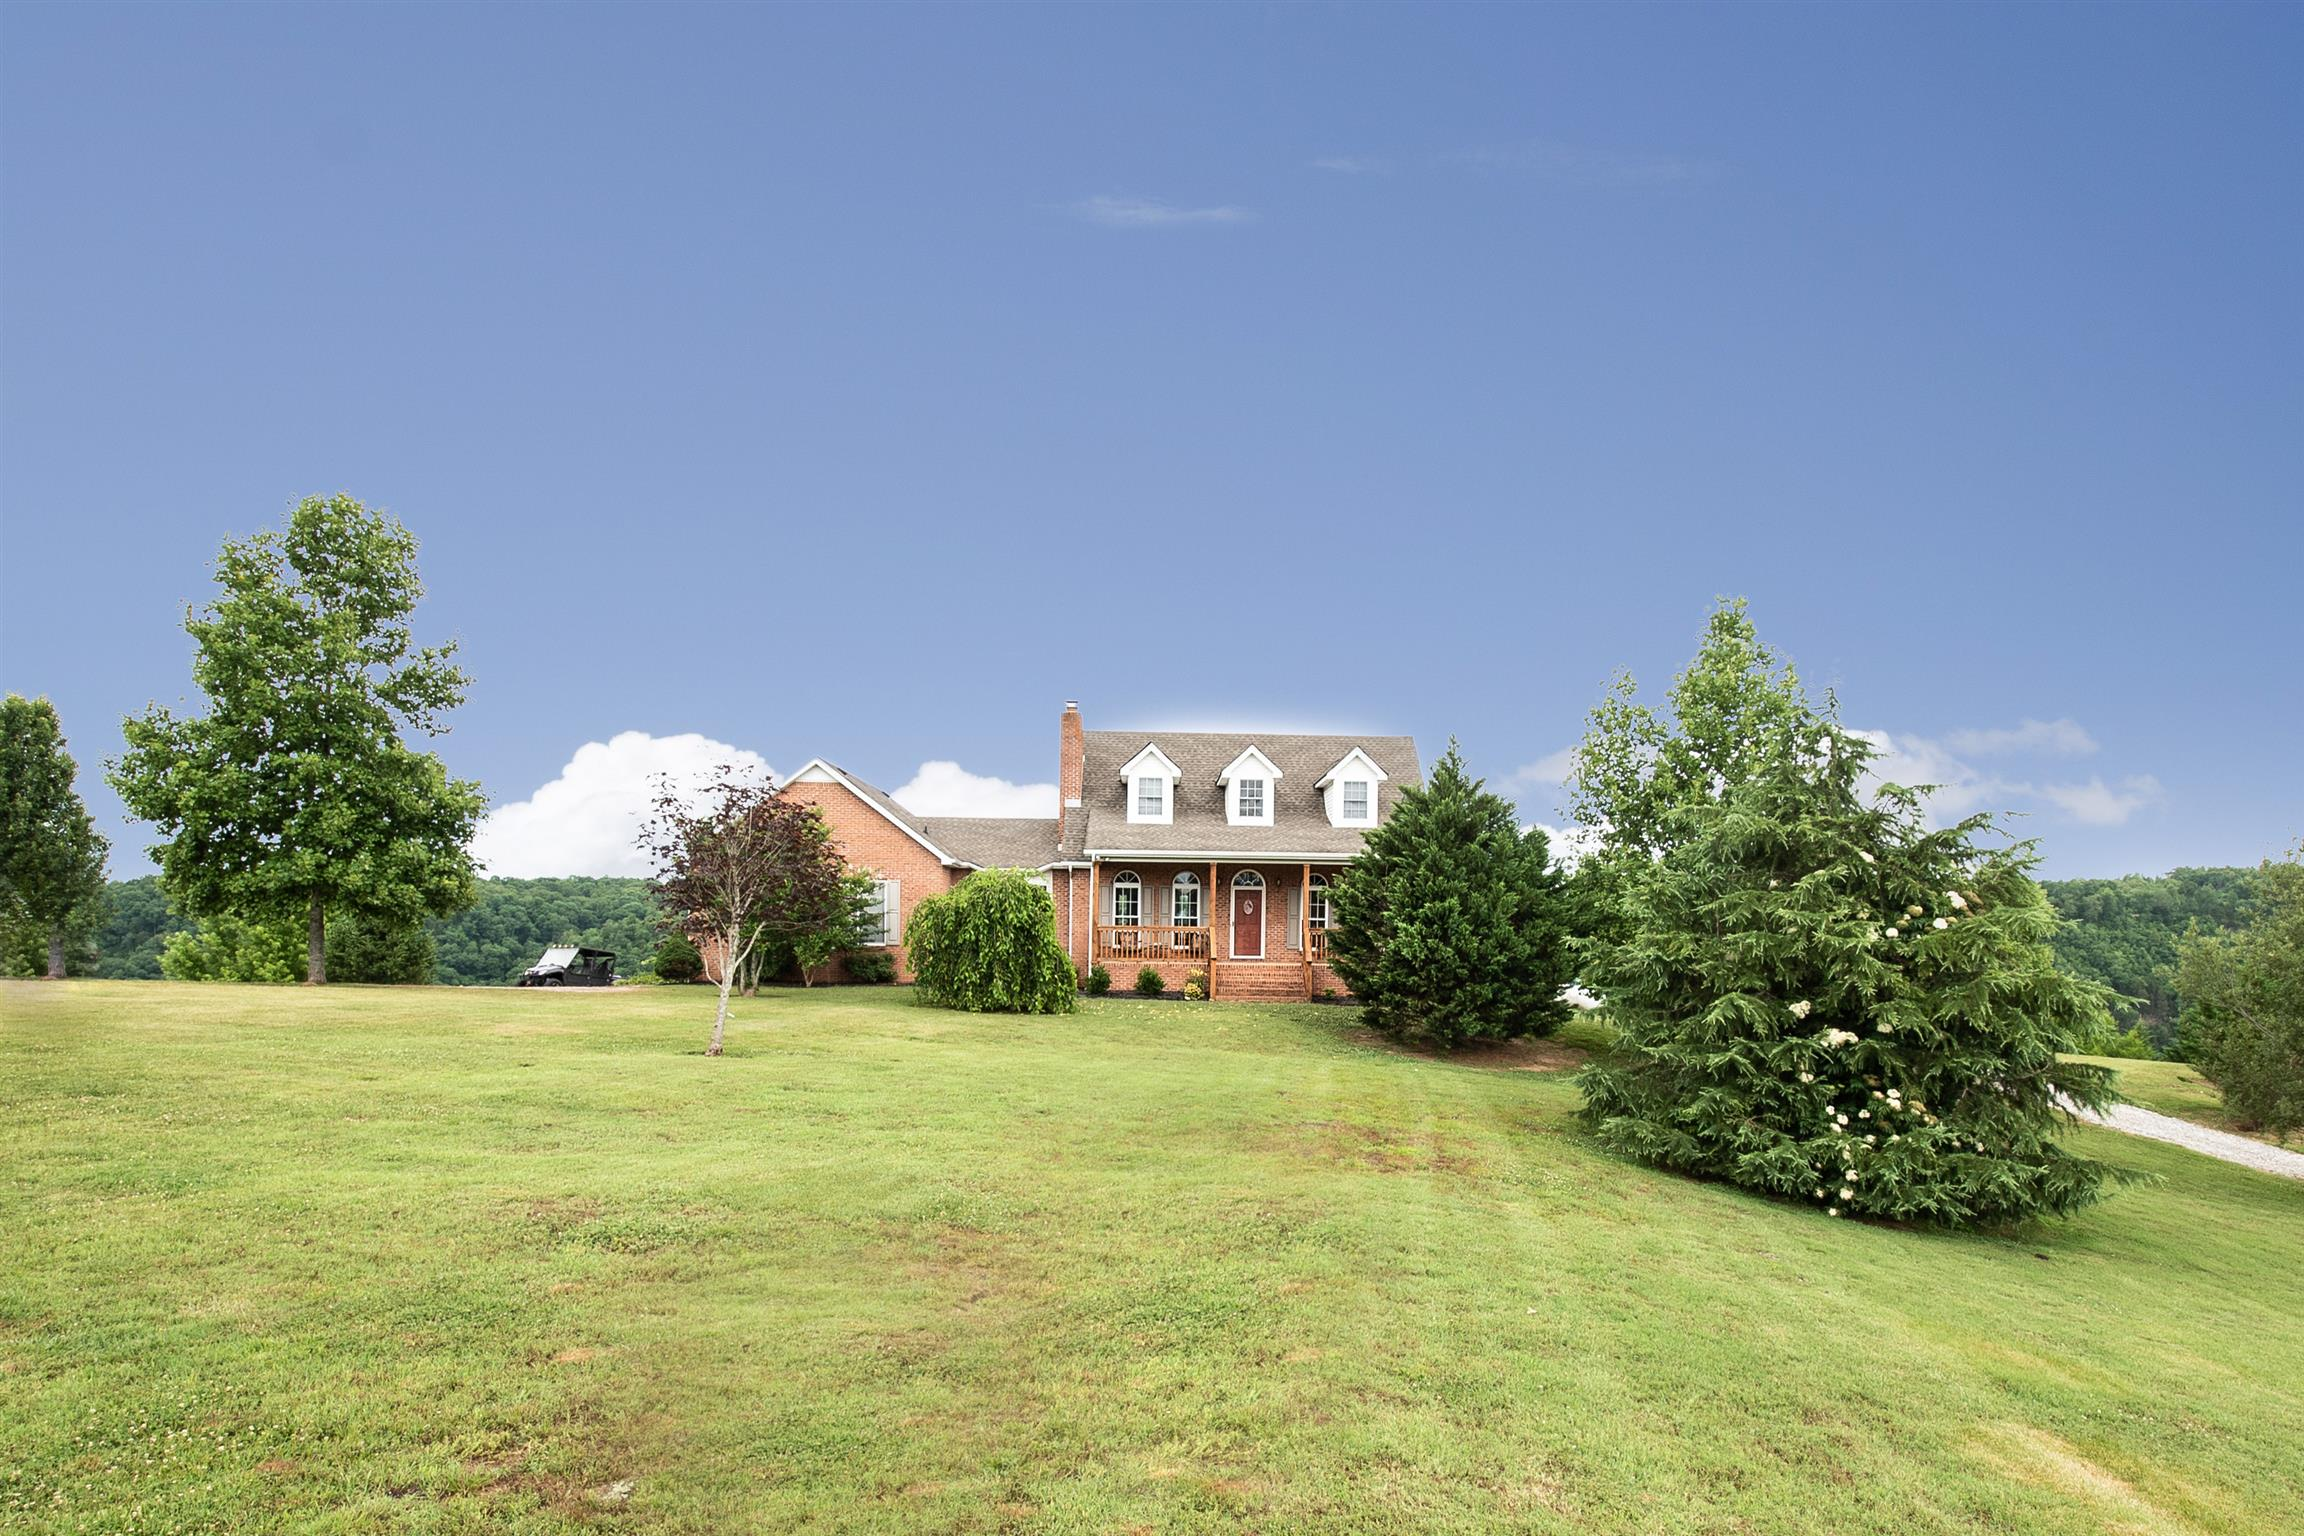 1113 Potts Camps Rd, Smithville, TN 37166 - Smithville, TN real estate listing